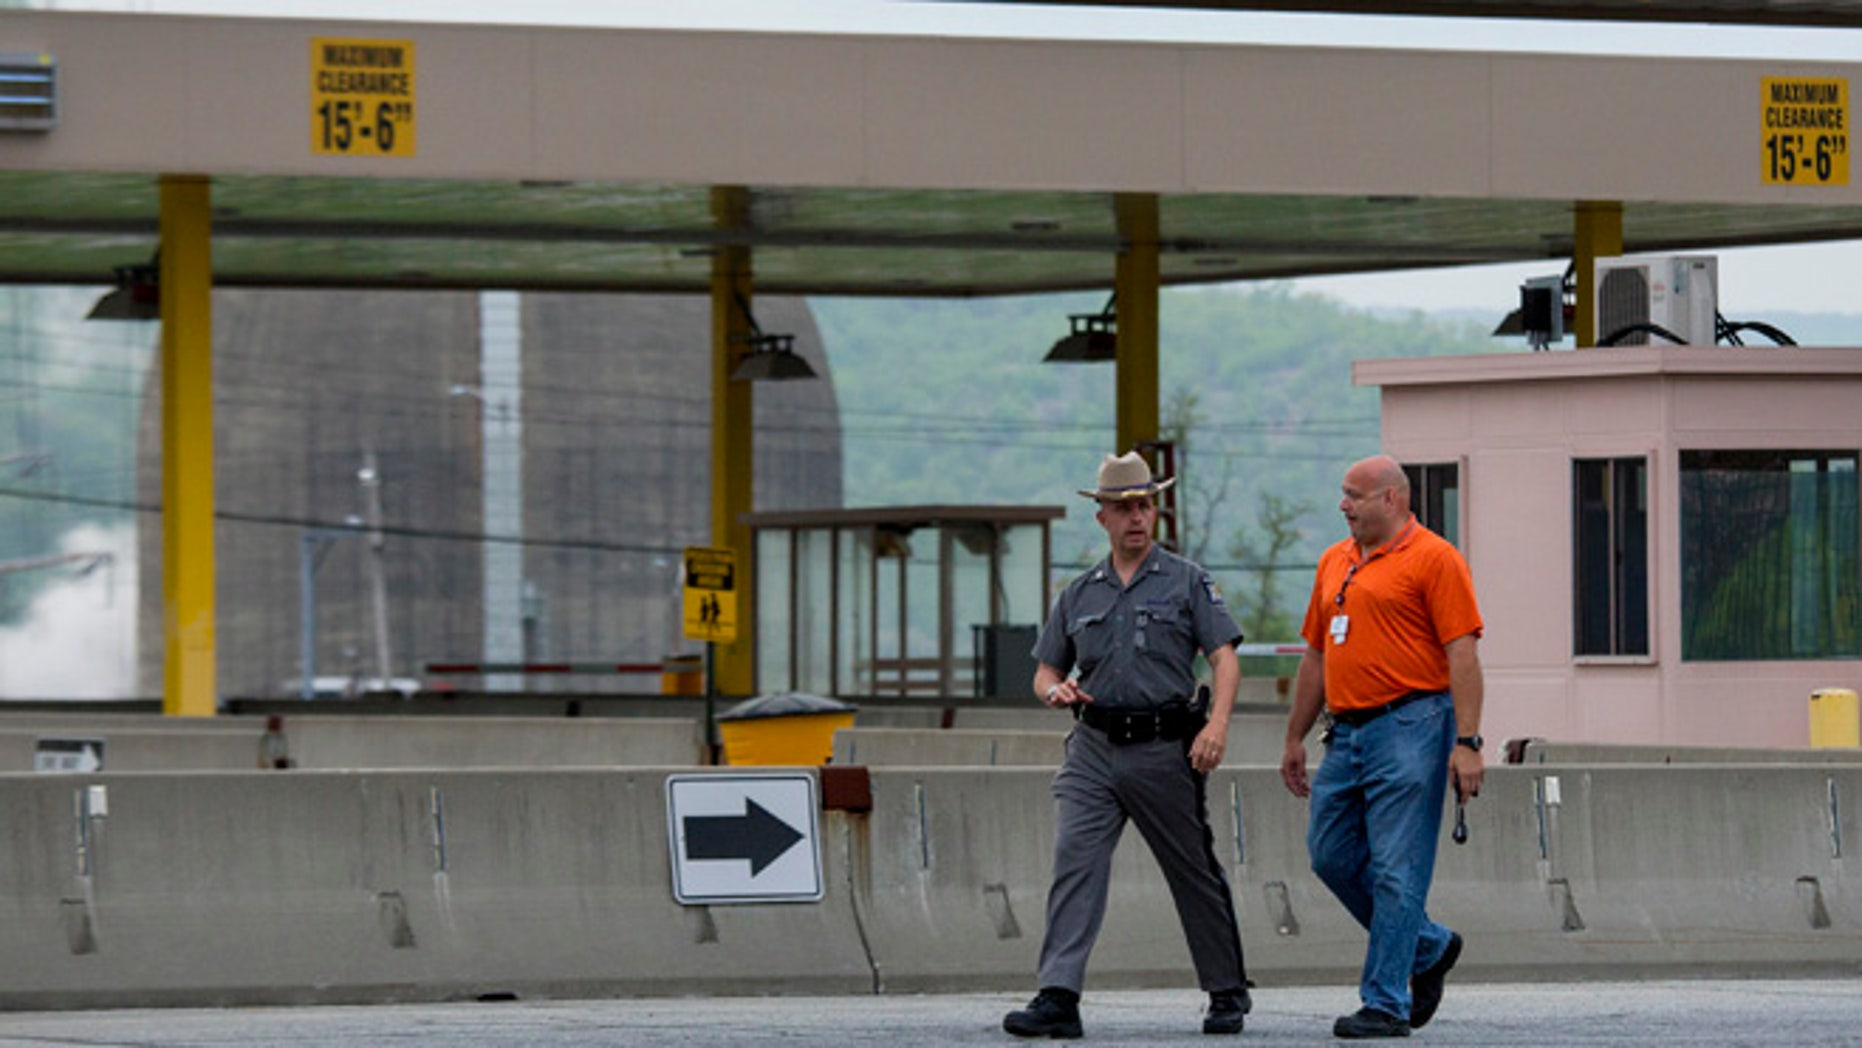 May 9, 2015: Police and security officials move about the Indian Point nuclear power plant after a transformer failed, causing a fire that has been extinguished in Buchanan, N.Y.